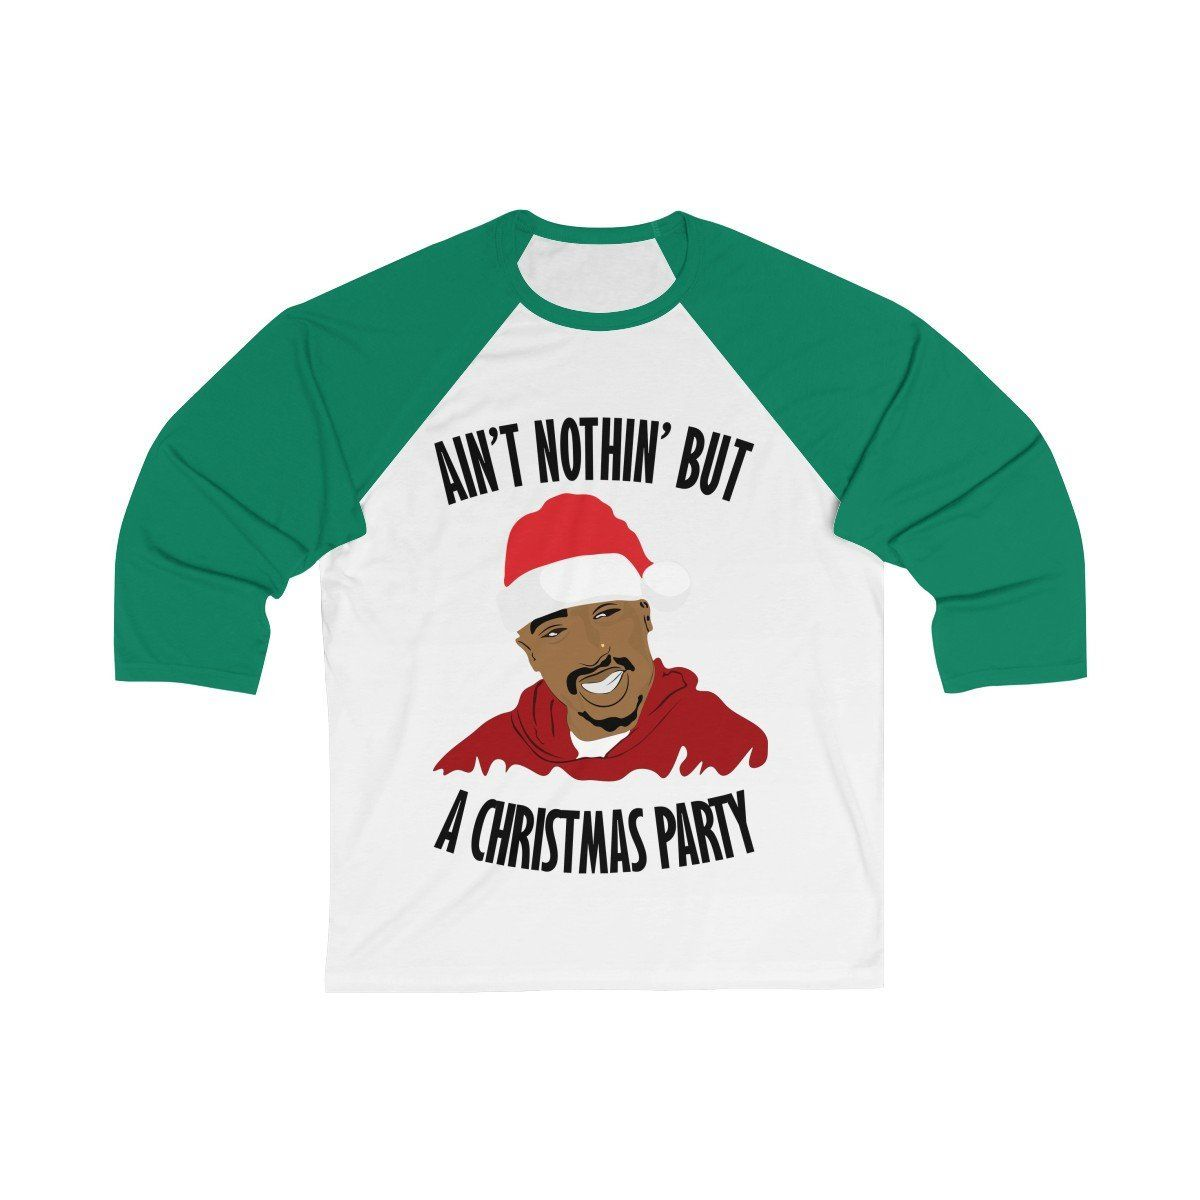 Aint Nothin But A Christmas Party Tupac Baseball T Shirt Unisex 34